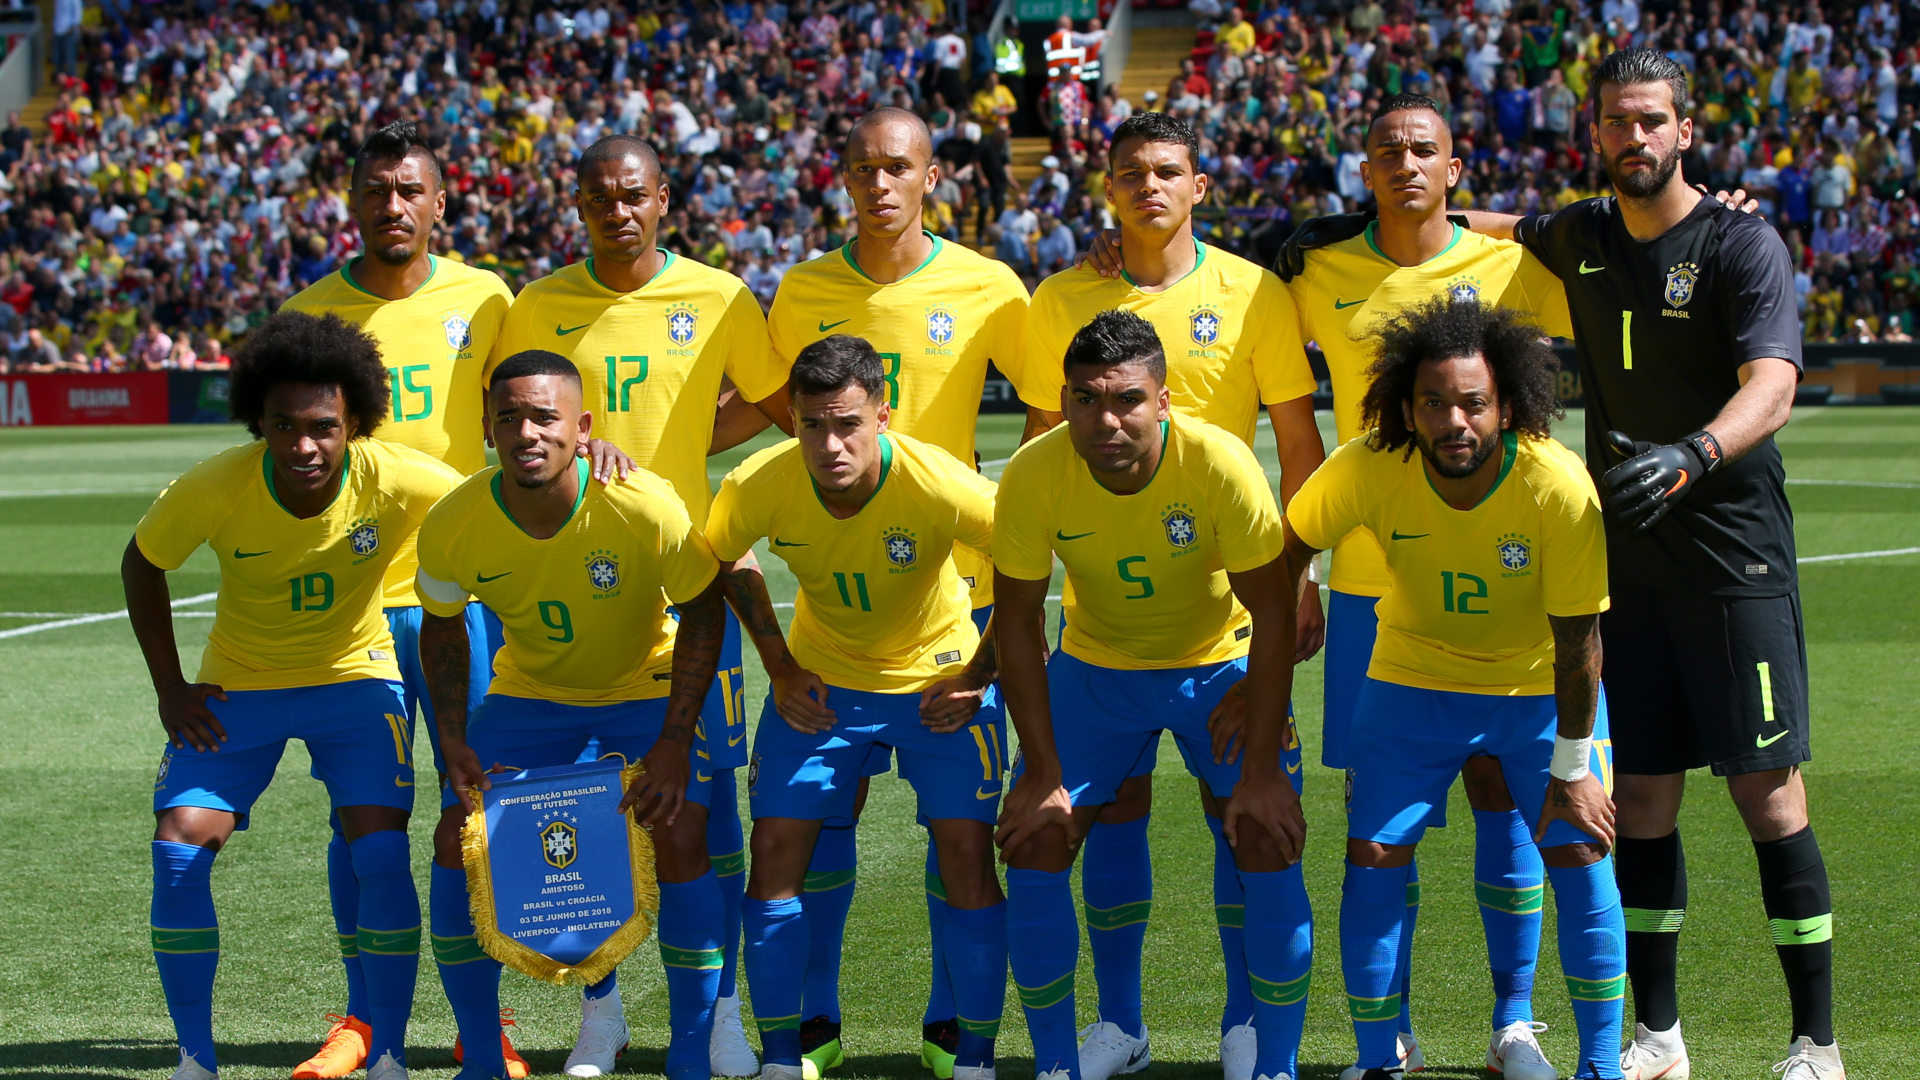 Brazil set to put dour World Cup performances behind them